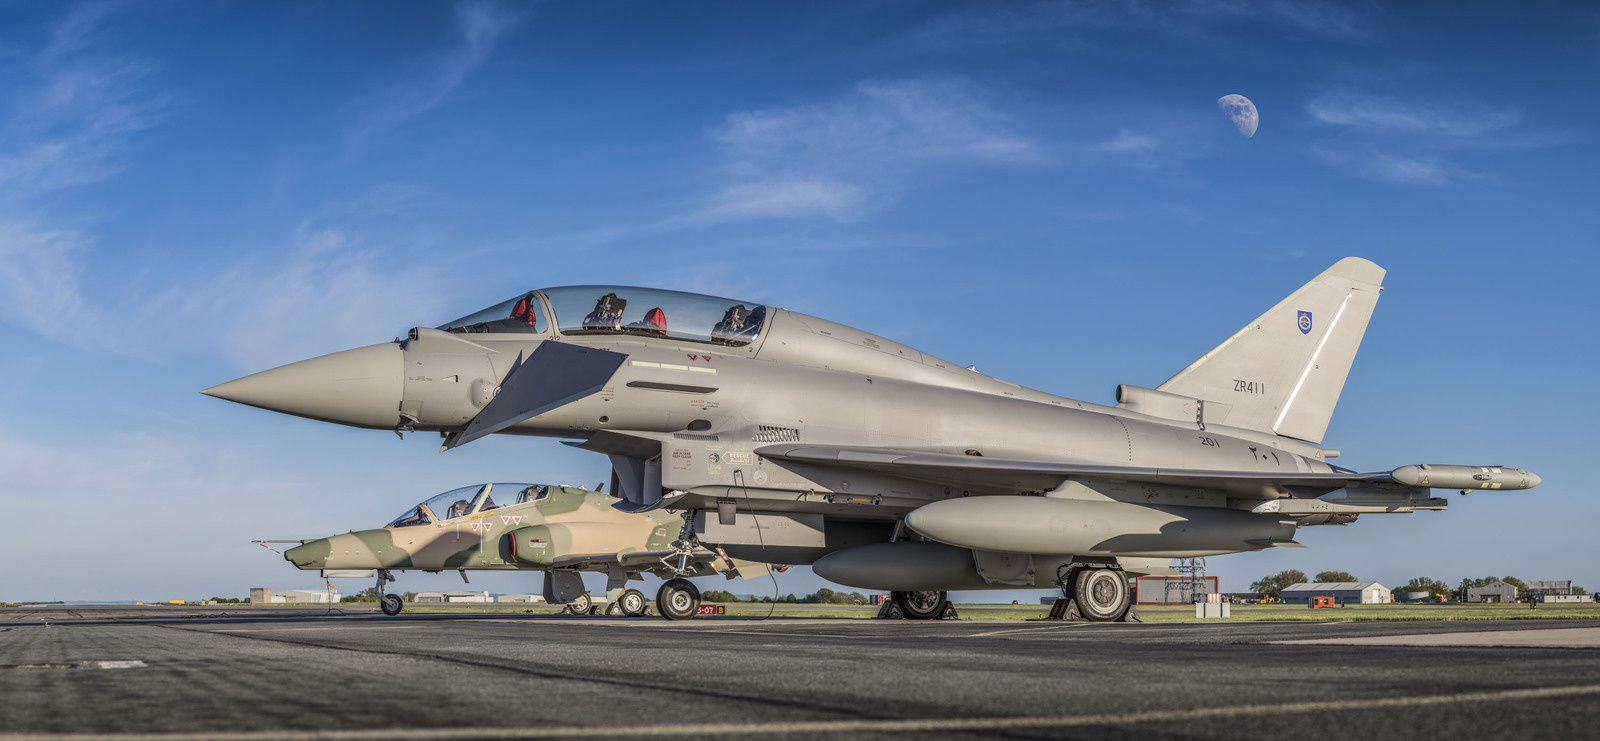 © Eurofighter - Le premier Typhoon et Hawk de la Force Aérienne Royale d'Oman.